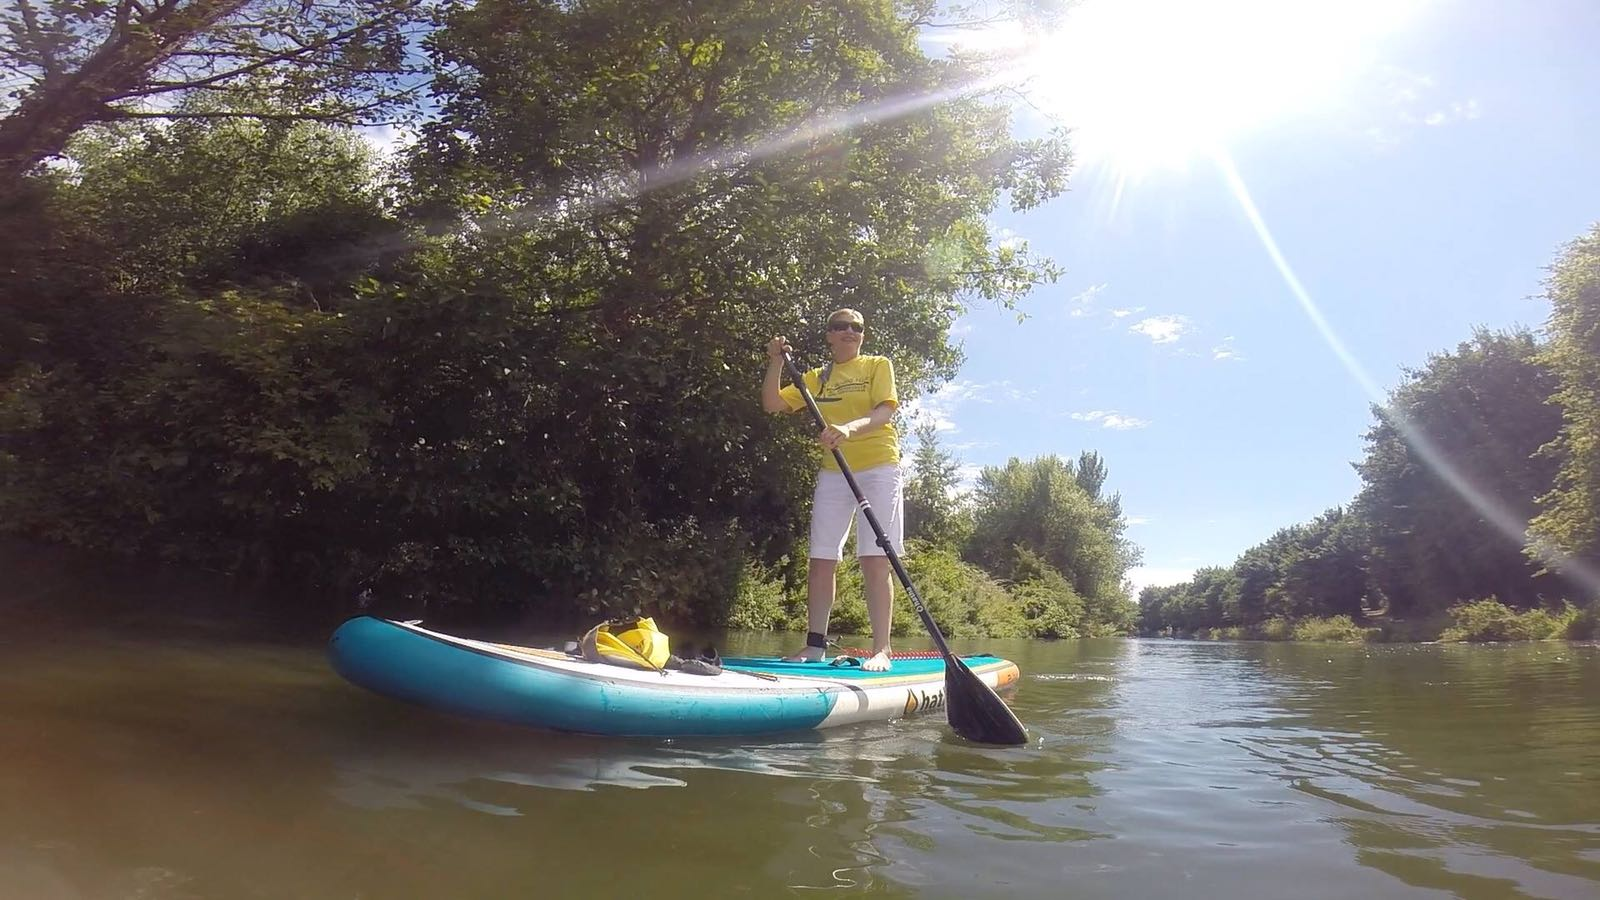 Paddle boarding along Chichester Canal in West Sussex